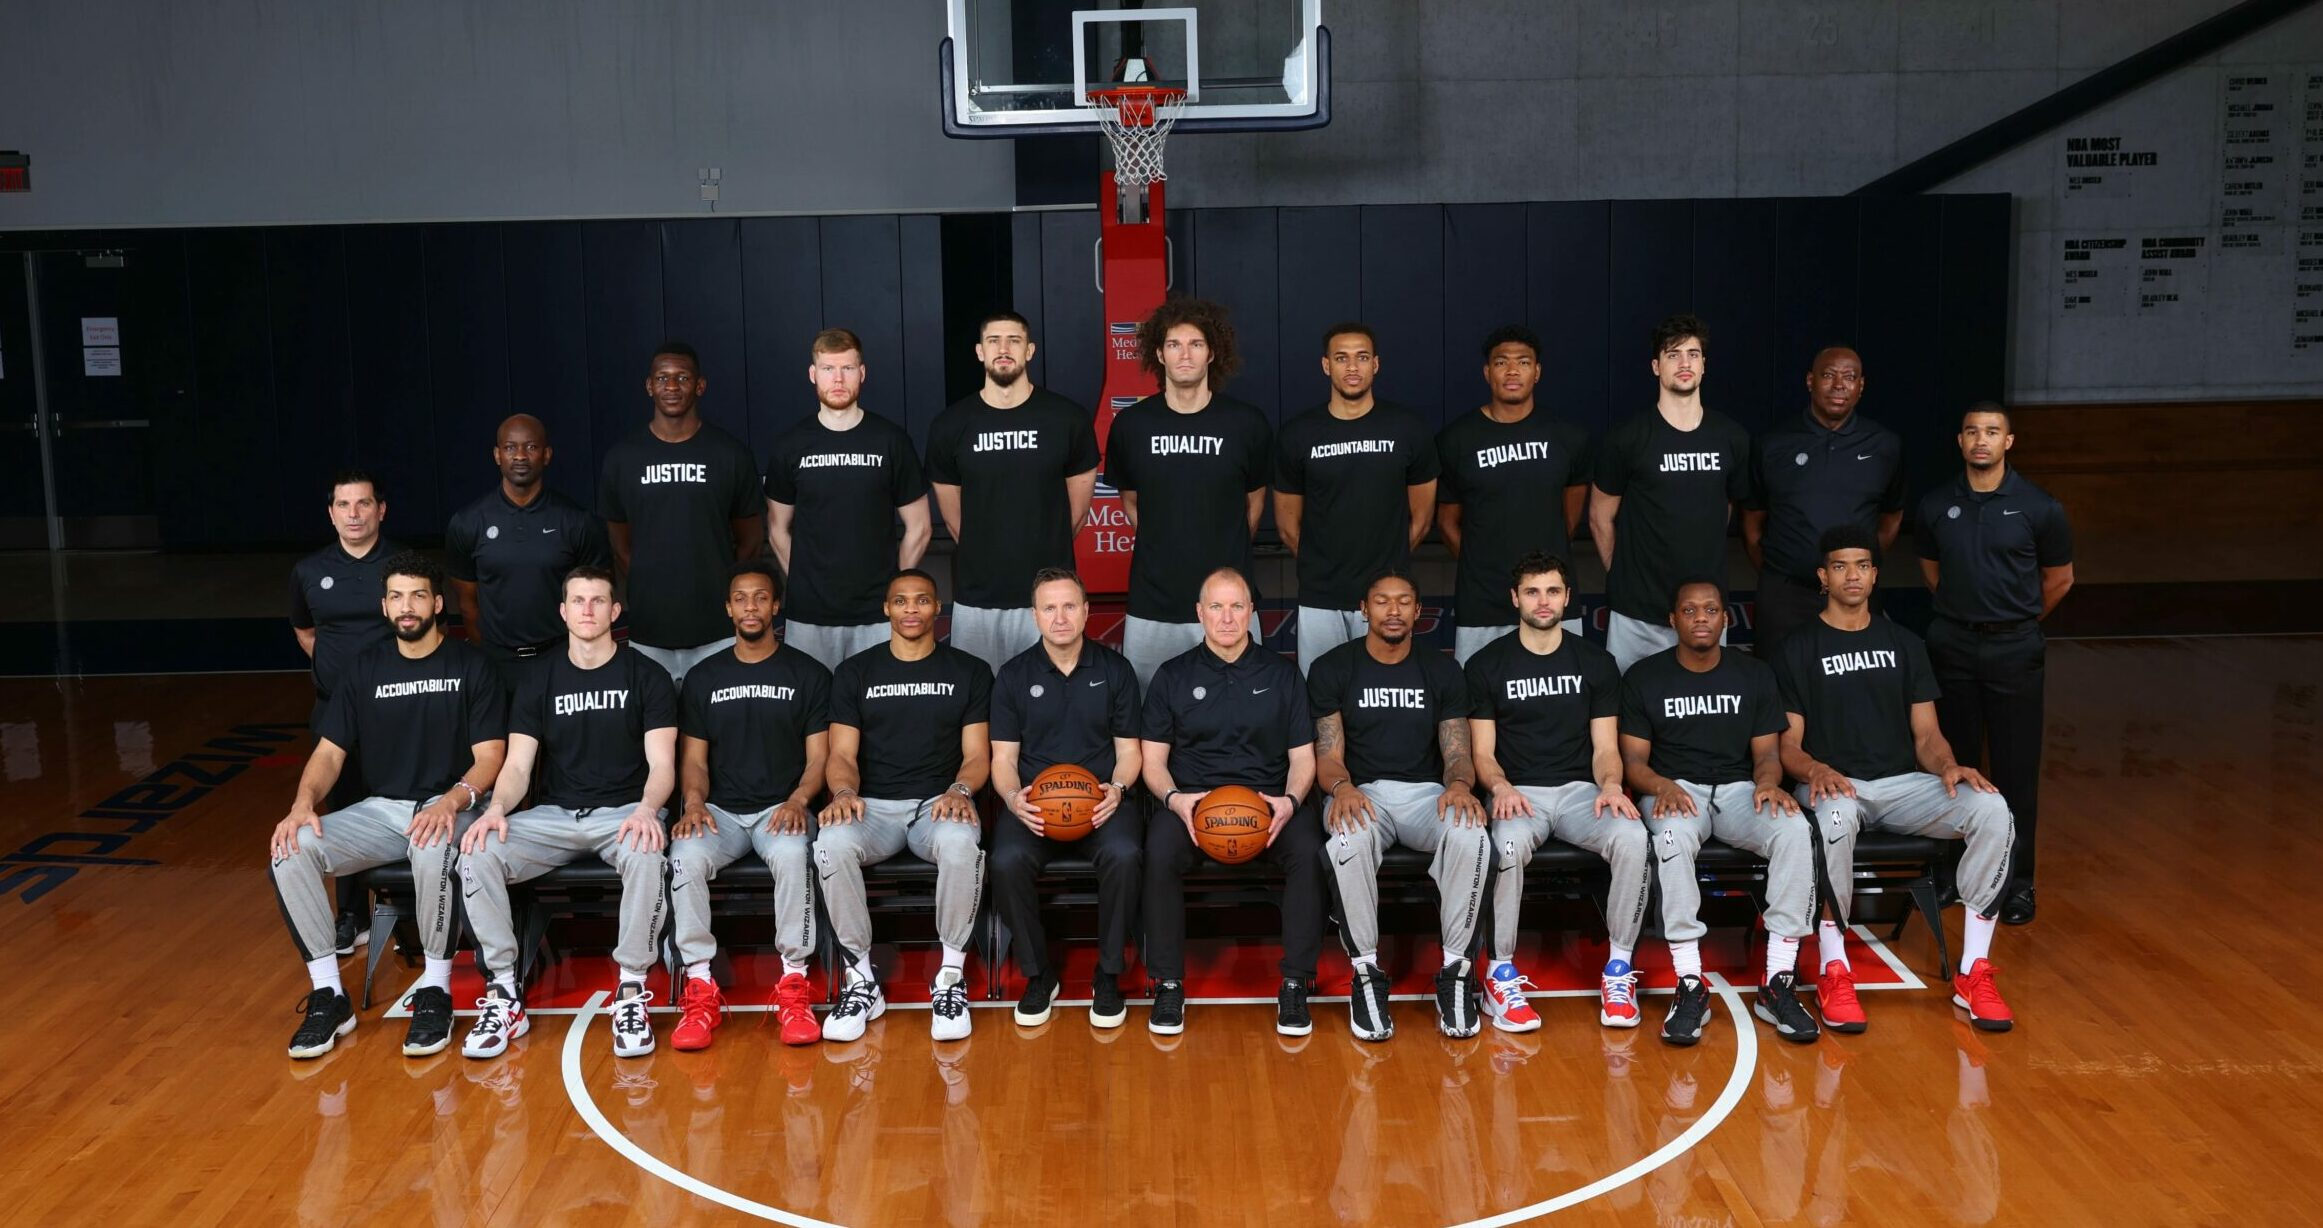 Wizards make statement with 2020-21 team photo